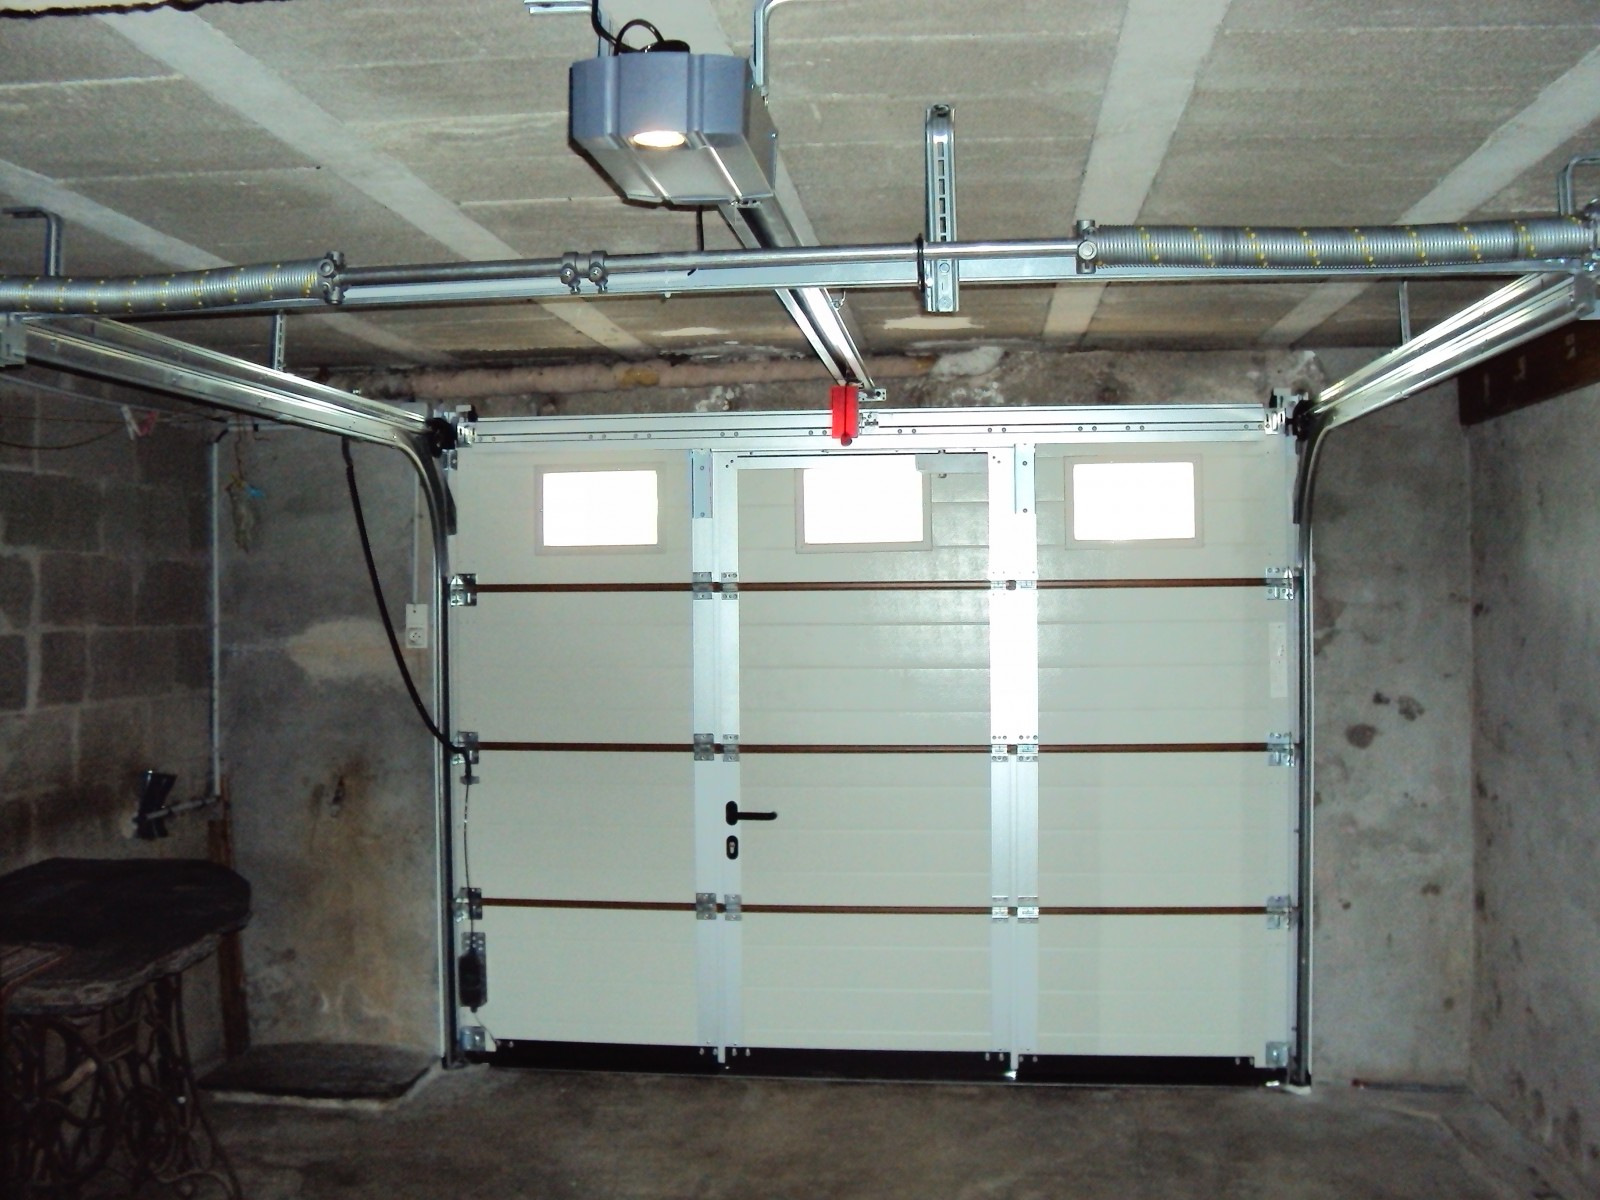 Motorisation porte de garage for Verin pour porte de garage basculante